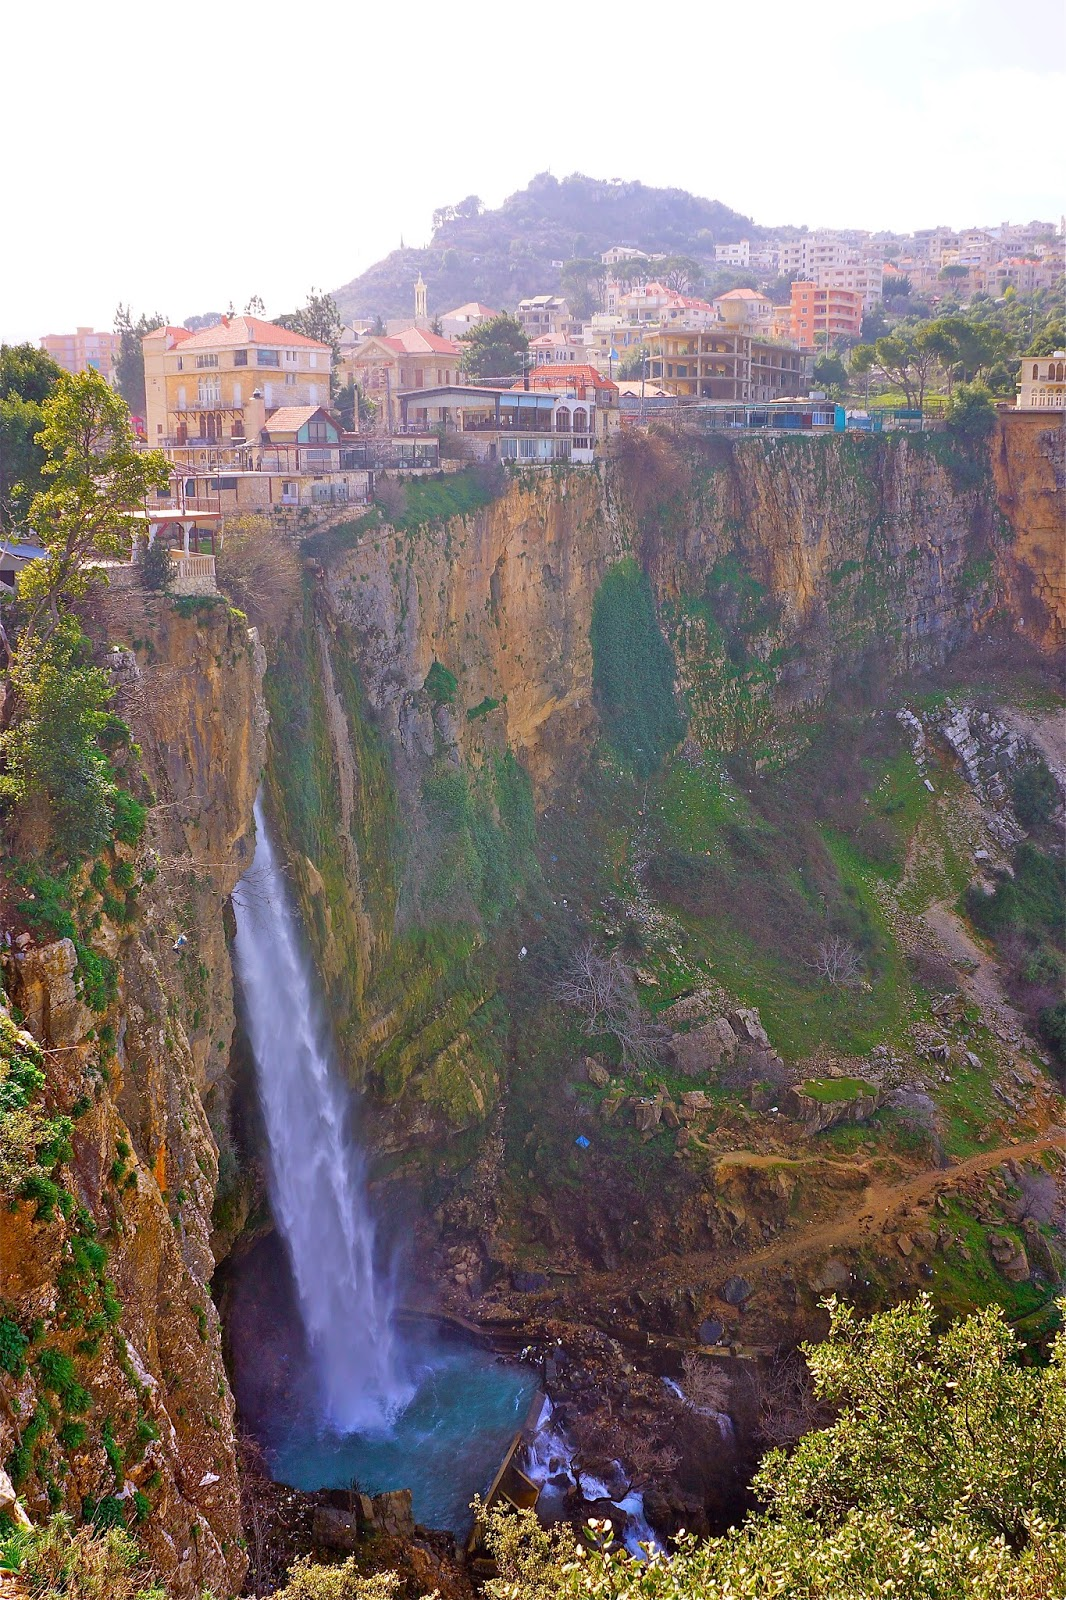 Picture of the highest waterfall in Jezzine, South Lebanon.